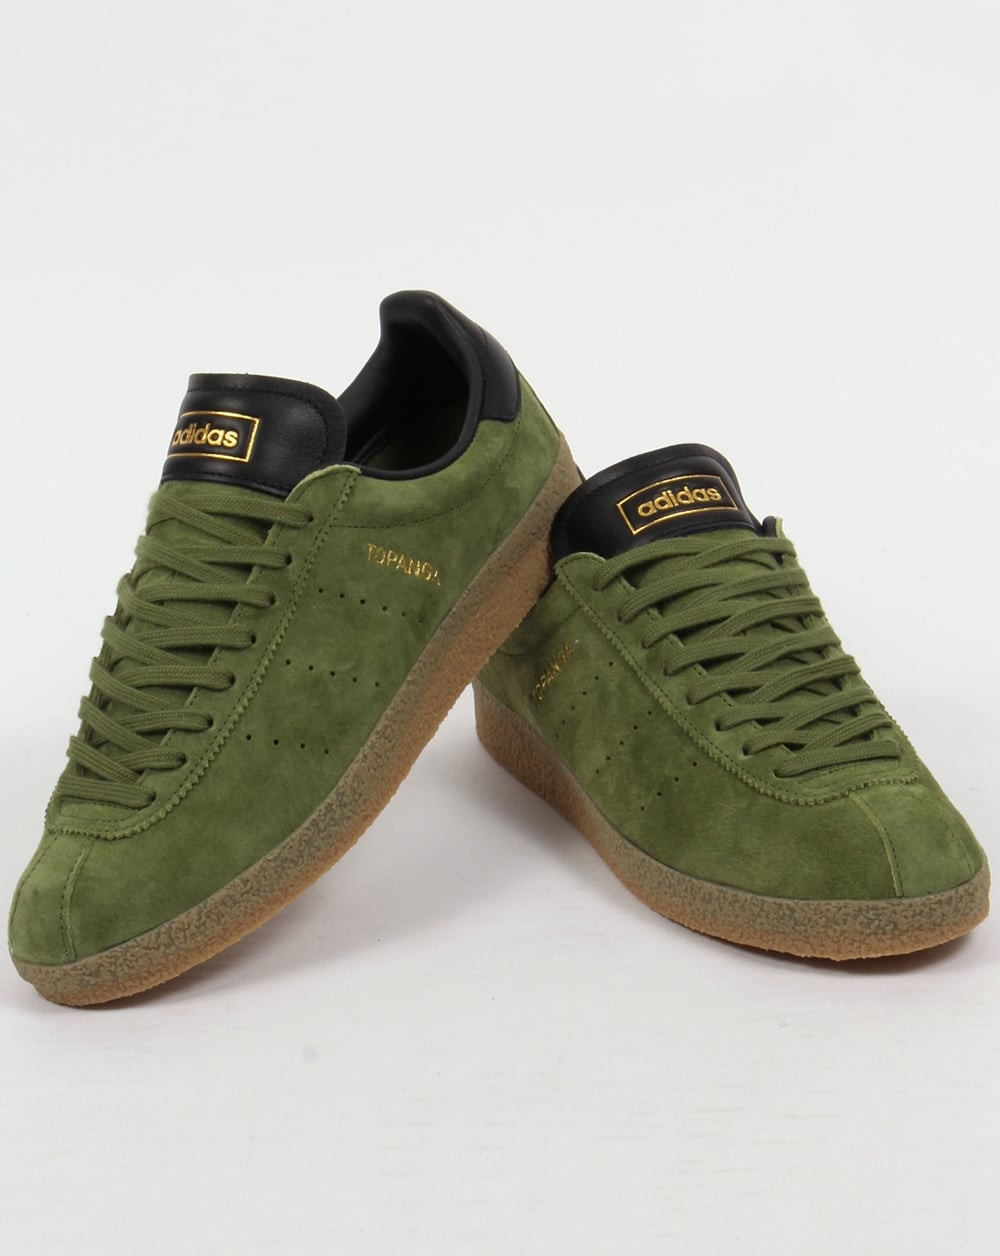 online store 25195 168cf Adidas Topanga Clean Trainers Craft Green Black